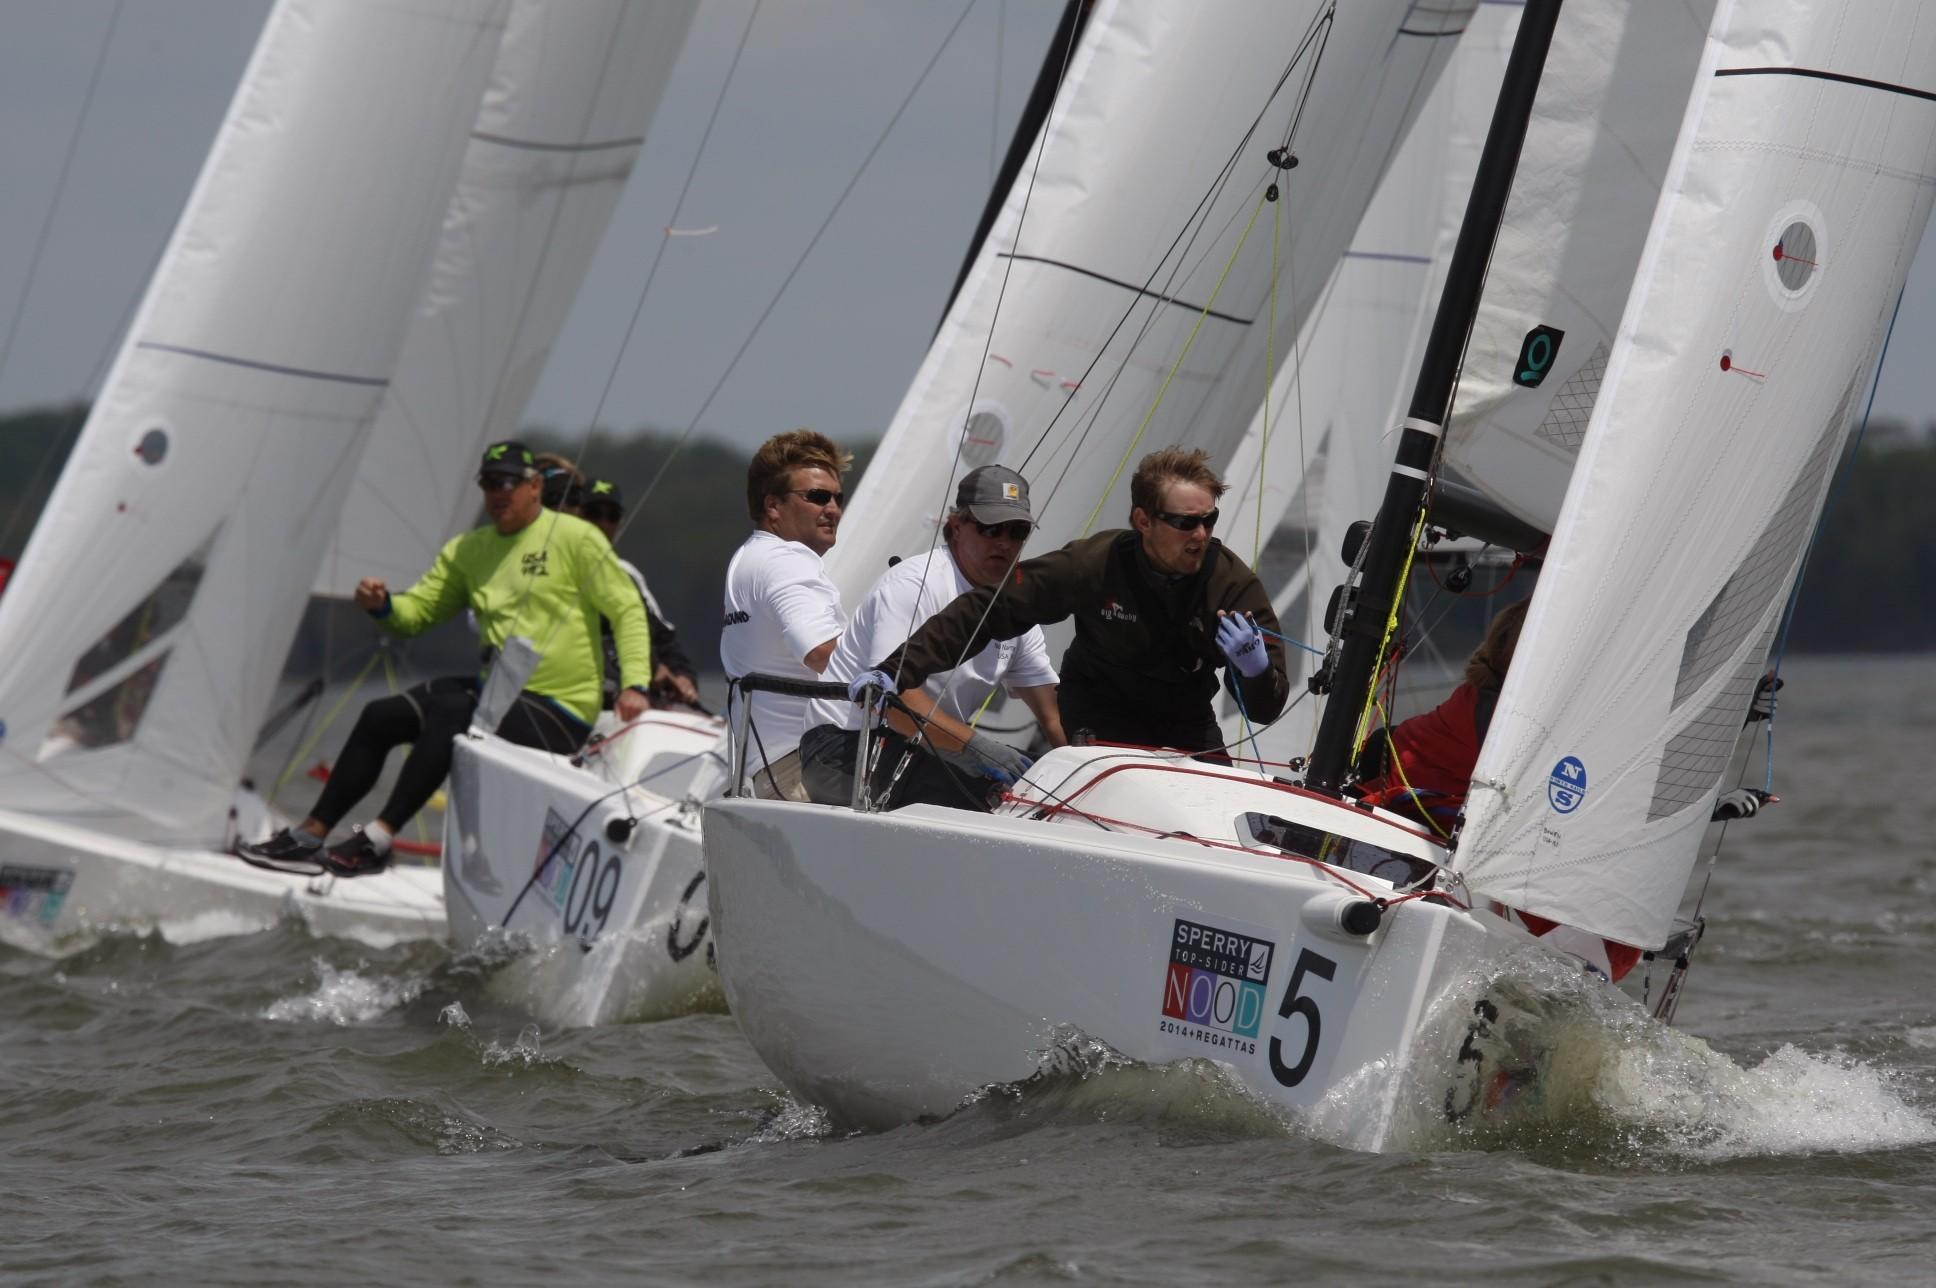 """Thomas Bowen, of Charleston, S.C., skippers """"Reach Around"""" in the 55-boat J/70 class at the Sperry Top-Sider NOOD Regatta in Annapolis. The Annapolis YC is hosting 200 boats for three days of racing this weekend."""